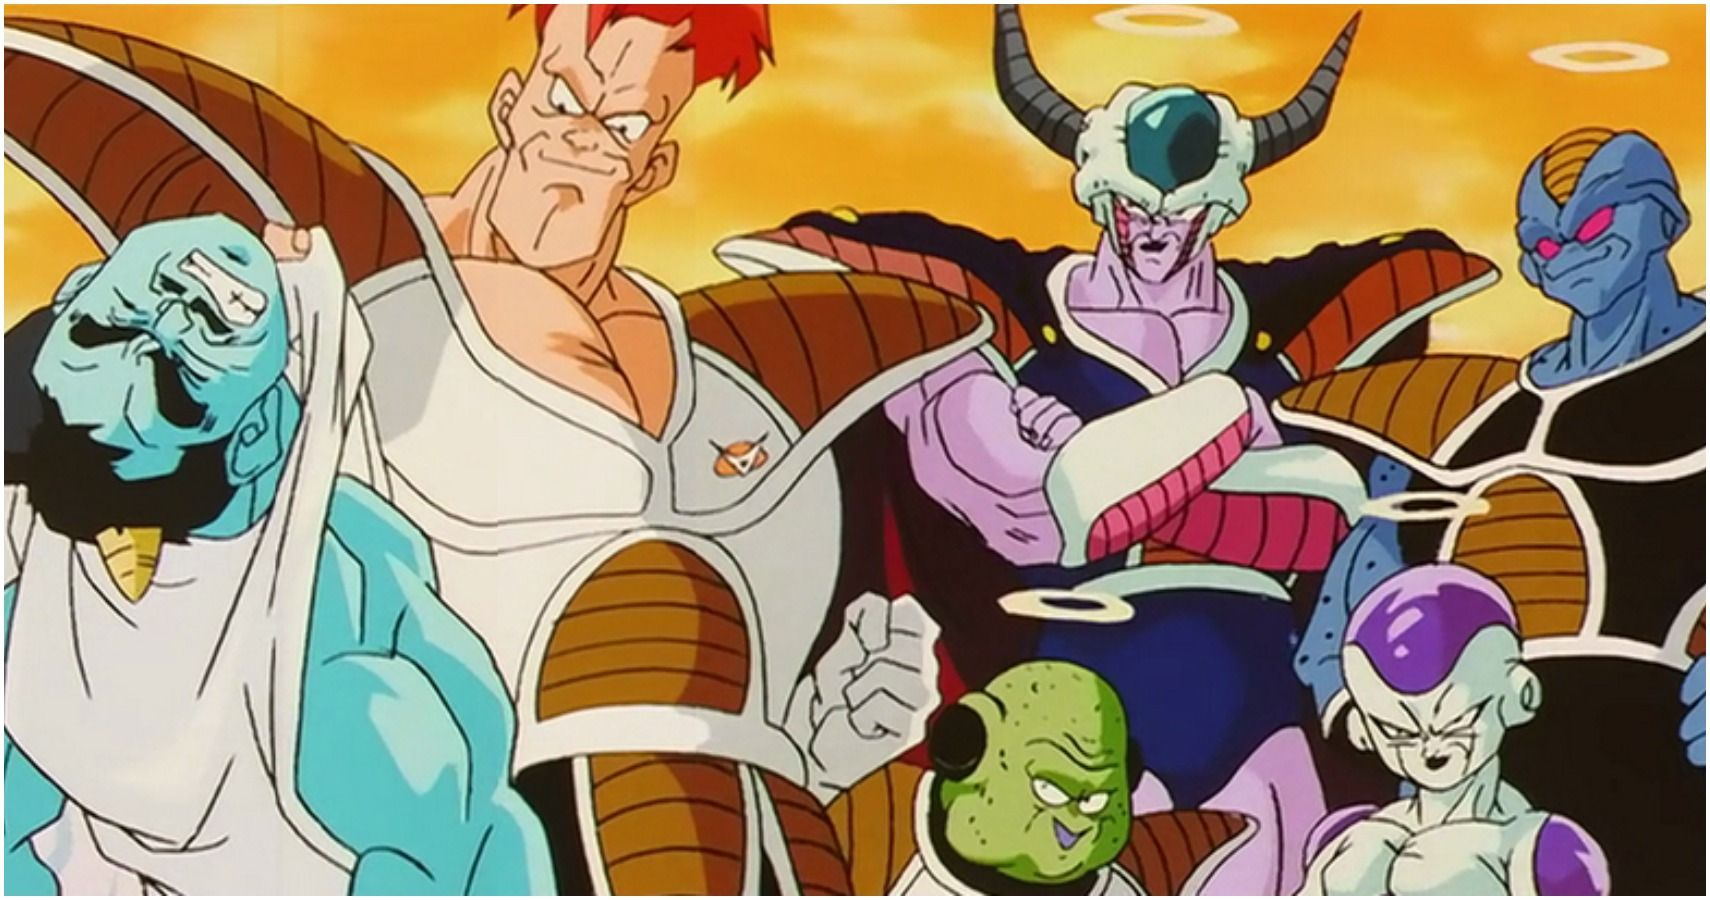 Dragon Villains: Dragon Ball: 5 Villains Who Were Redeemed (& 5 Who Stayed